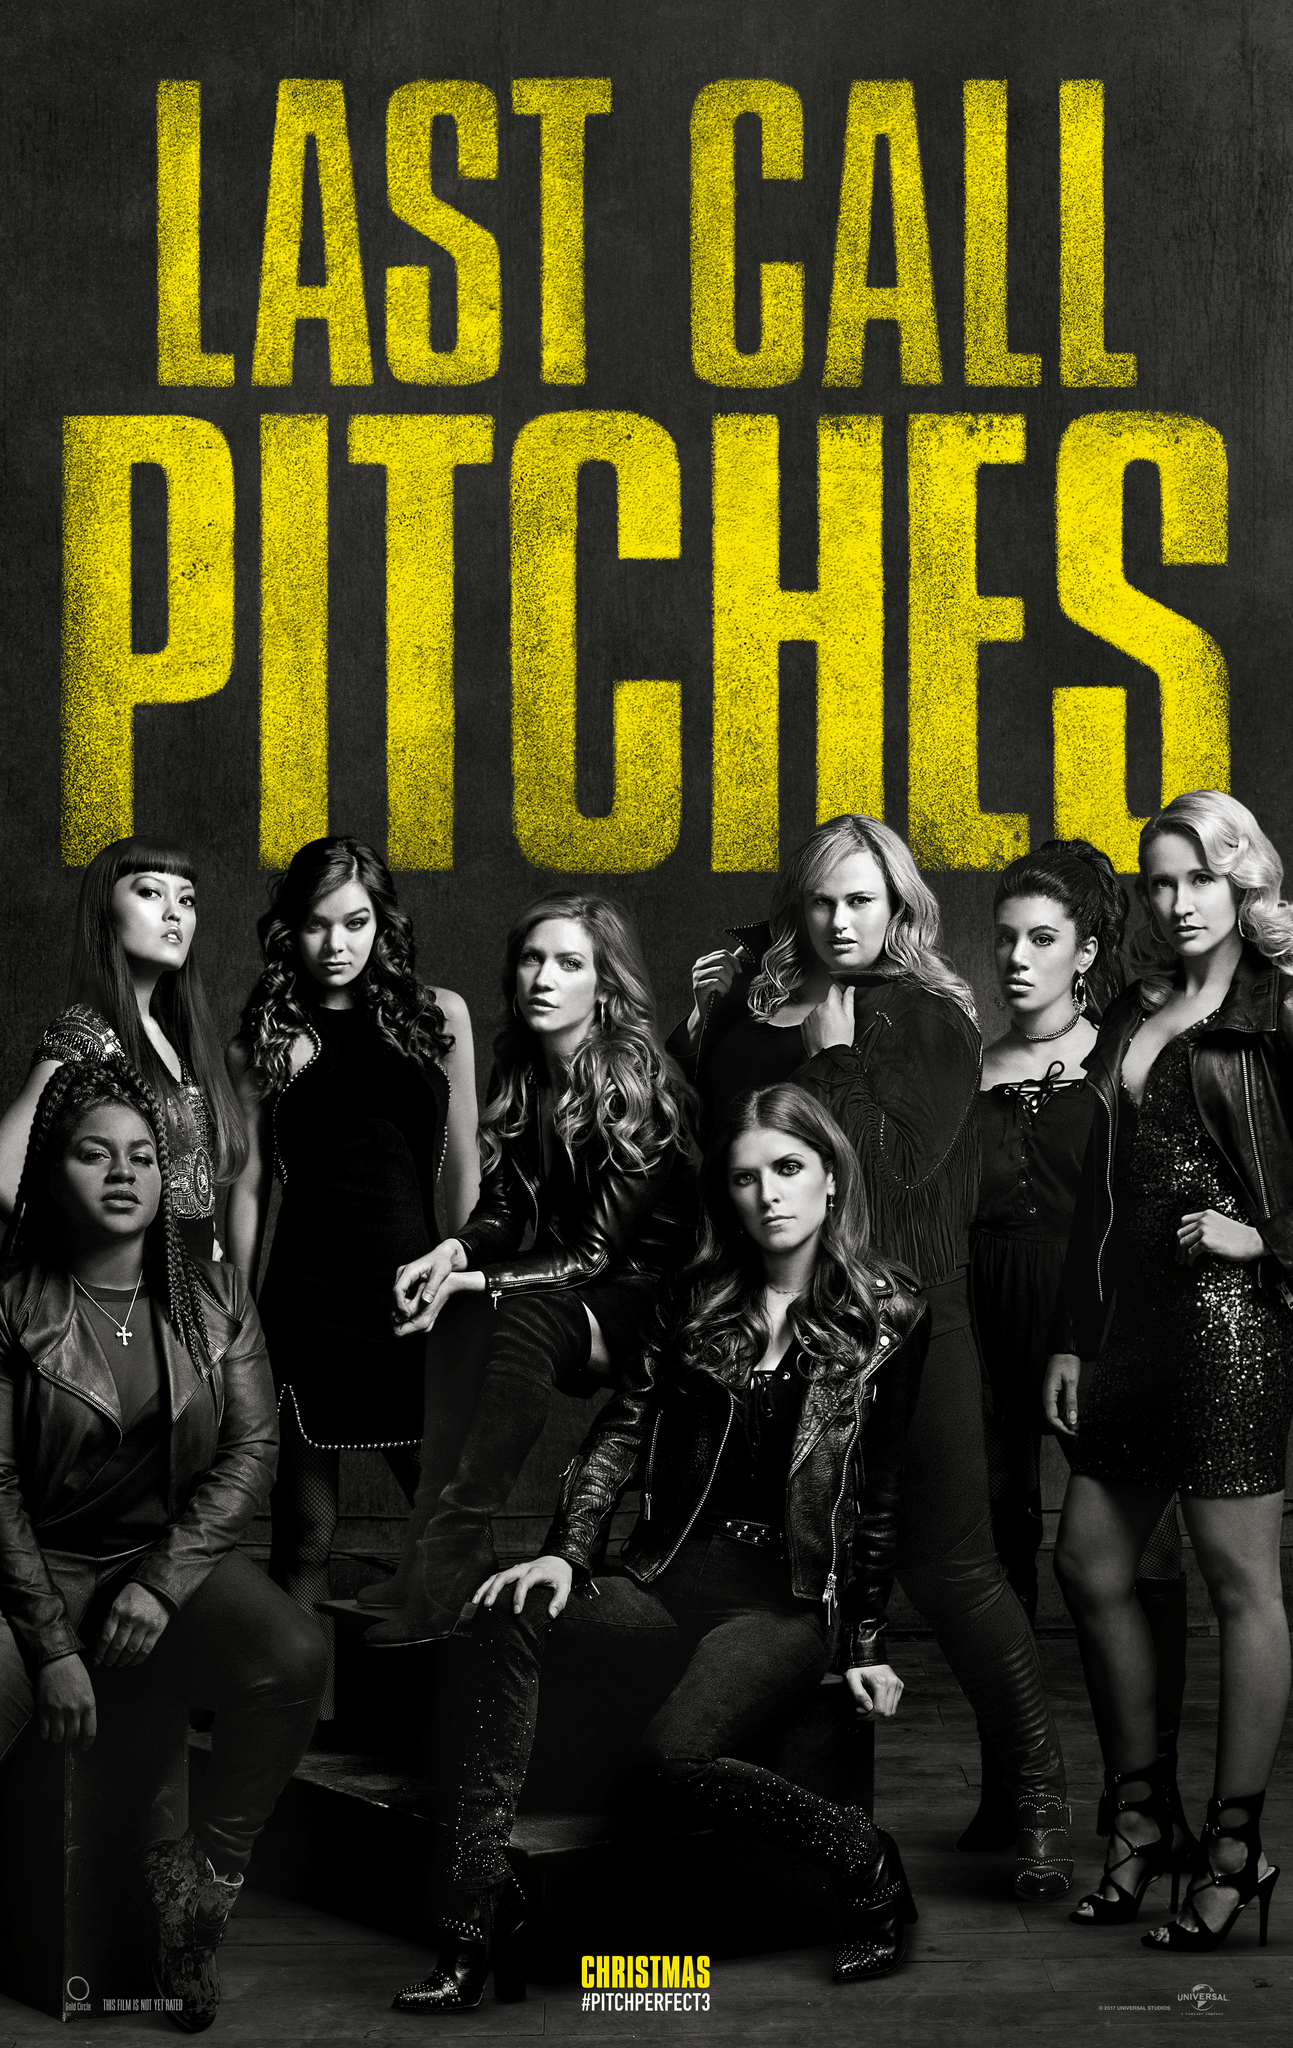 Anna Kendrick, Brittany Snow, Rebel Wilson, Anna Camp, Hana Mae Lee, Chrissie Fit, Hailee Steinfeld, Ester Dean, and Shelley Regner in Pitch Perfect 3 (2017)